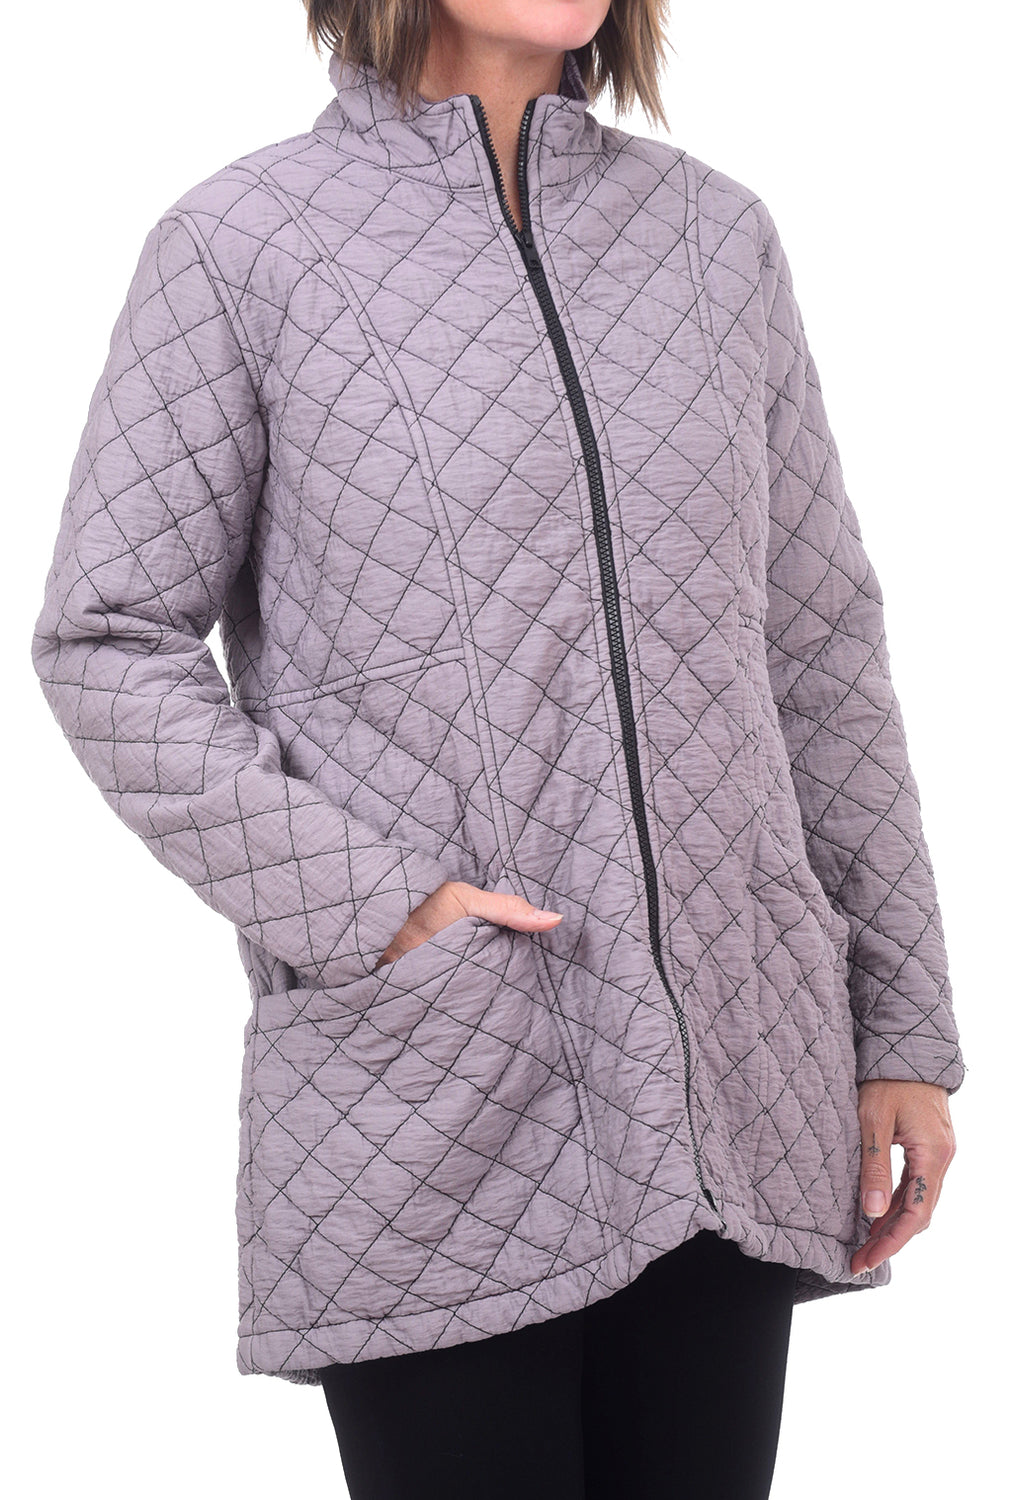 Cut Loose Quilted Parachute Zip Jacket, Ash Violet